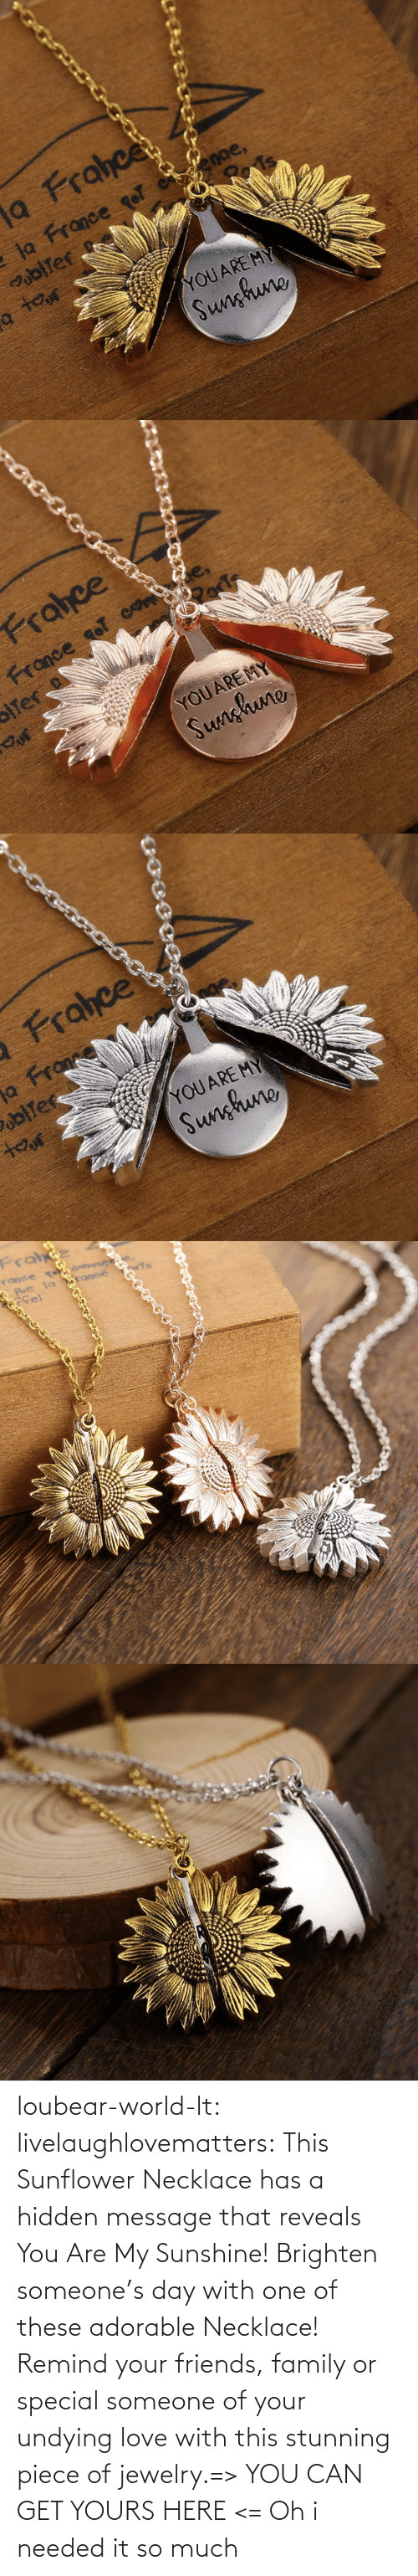 You Are: loubear-world-lt:  livelaughlovematters:  This Sunflower Necklace has a hidden message that reveals You Are My Sunshine! Brighten someone's day with one of these adorable Necklace! Remind your friends, family or special someone of your undying love with this stunning piece of jewelry.=> YOU CAN GET YOURS HERE <=   Oh i needed it so much